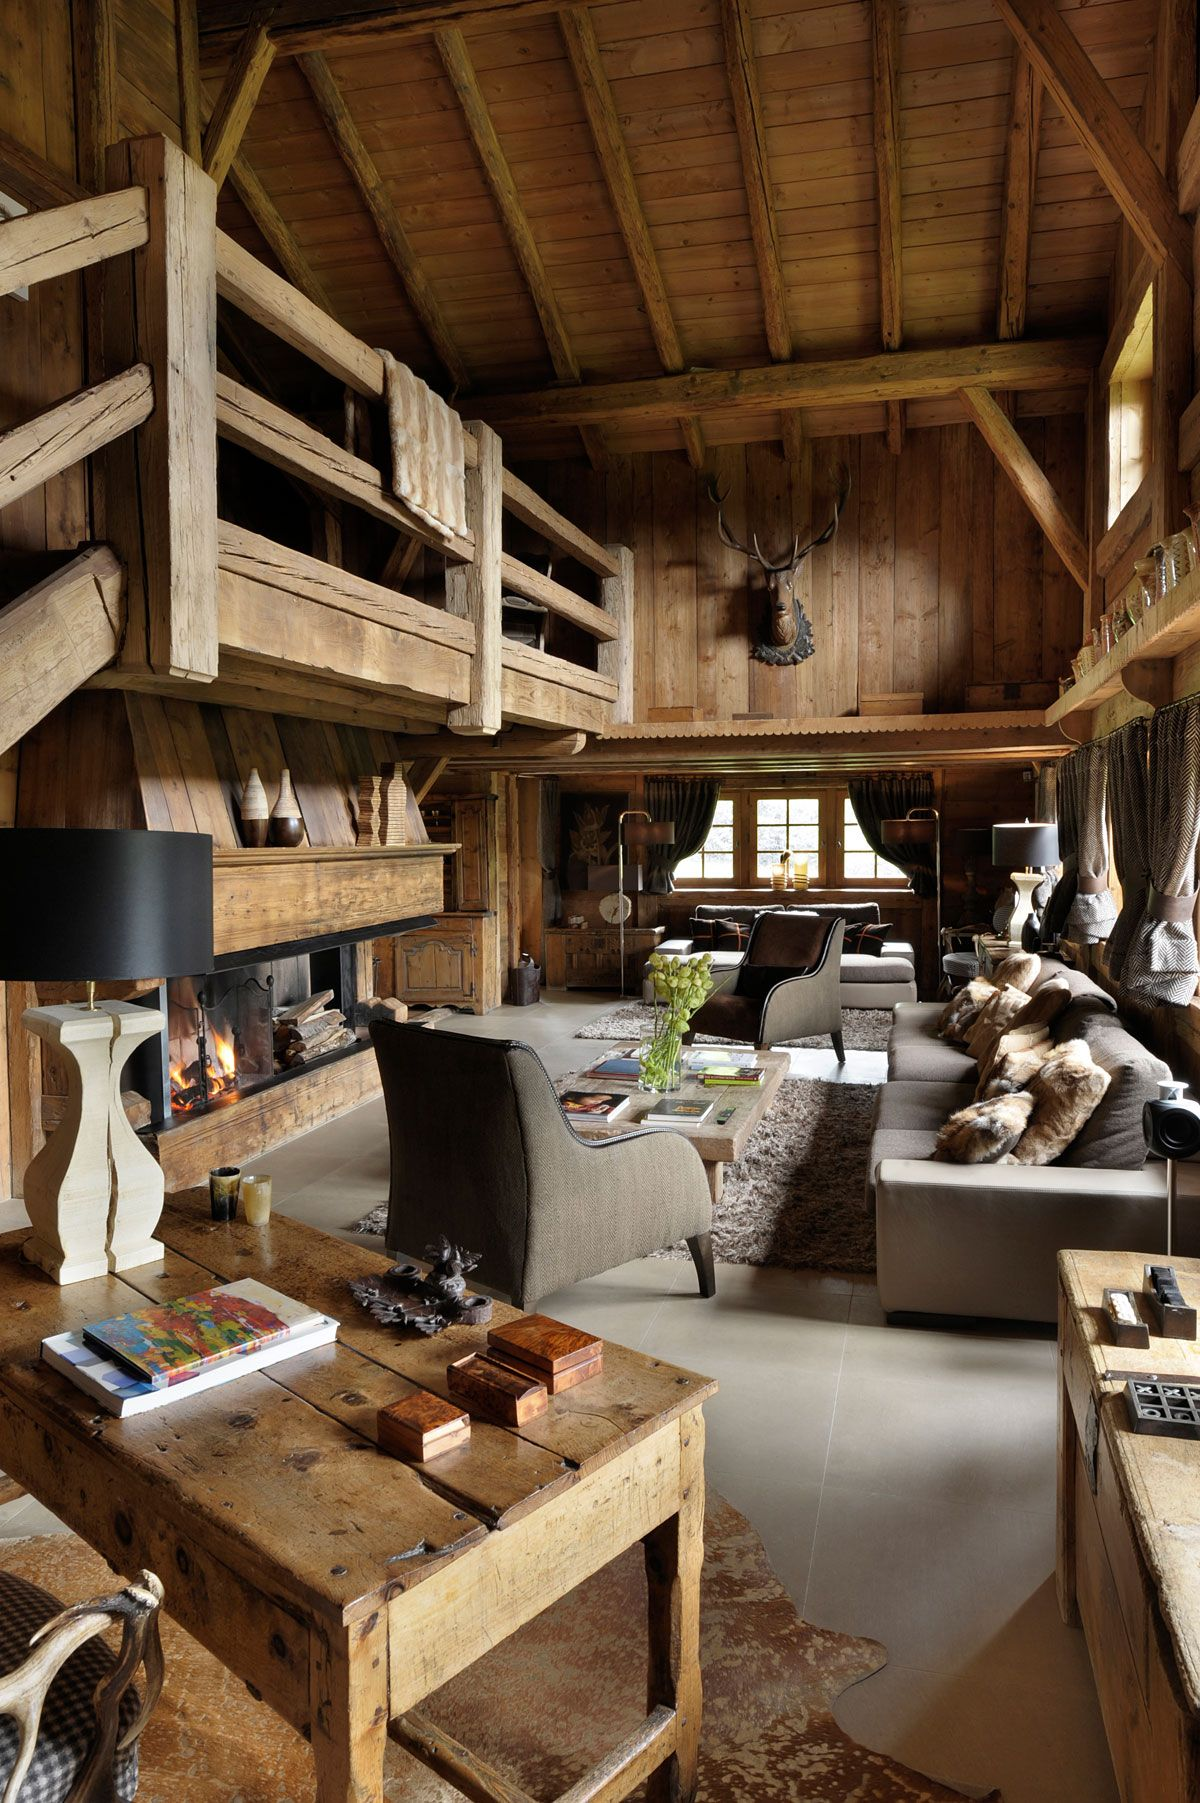 le chalet des fermes de marie megeve france century luxuriously refurbished private chalet with all of the trimmings